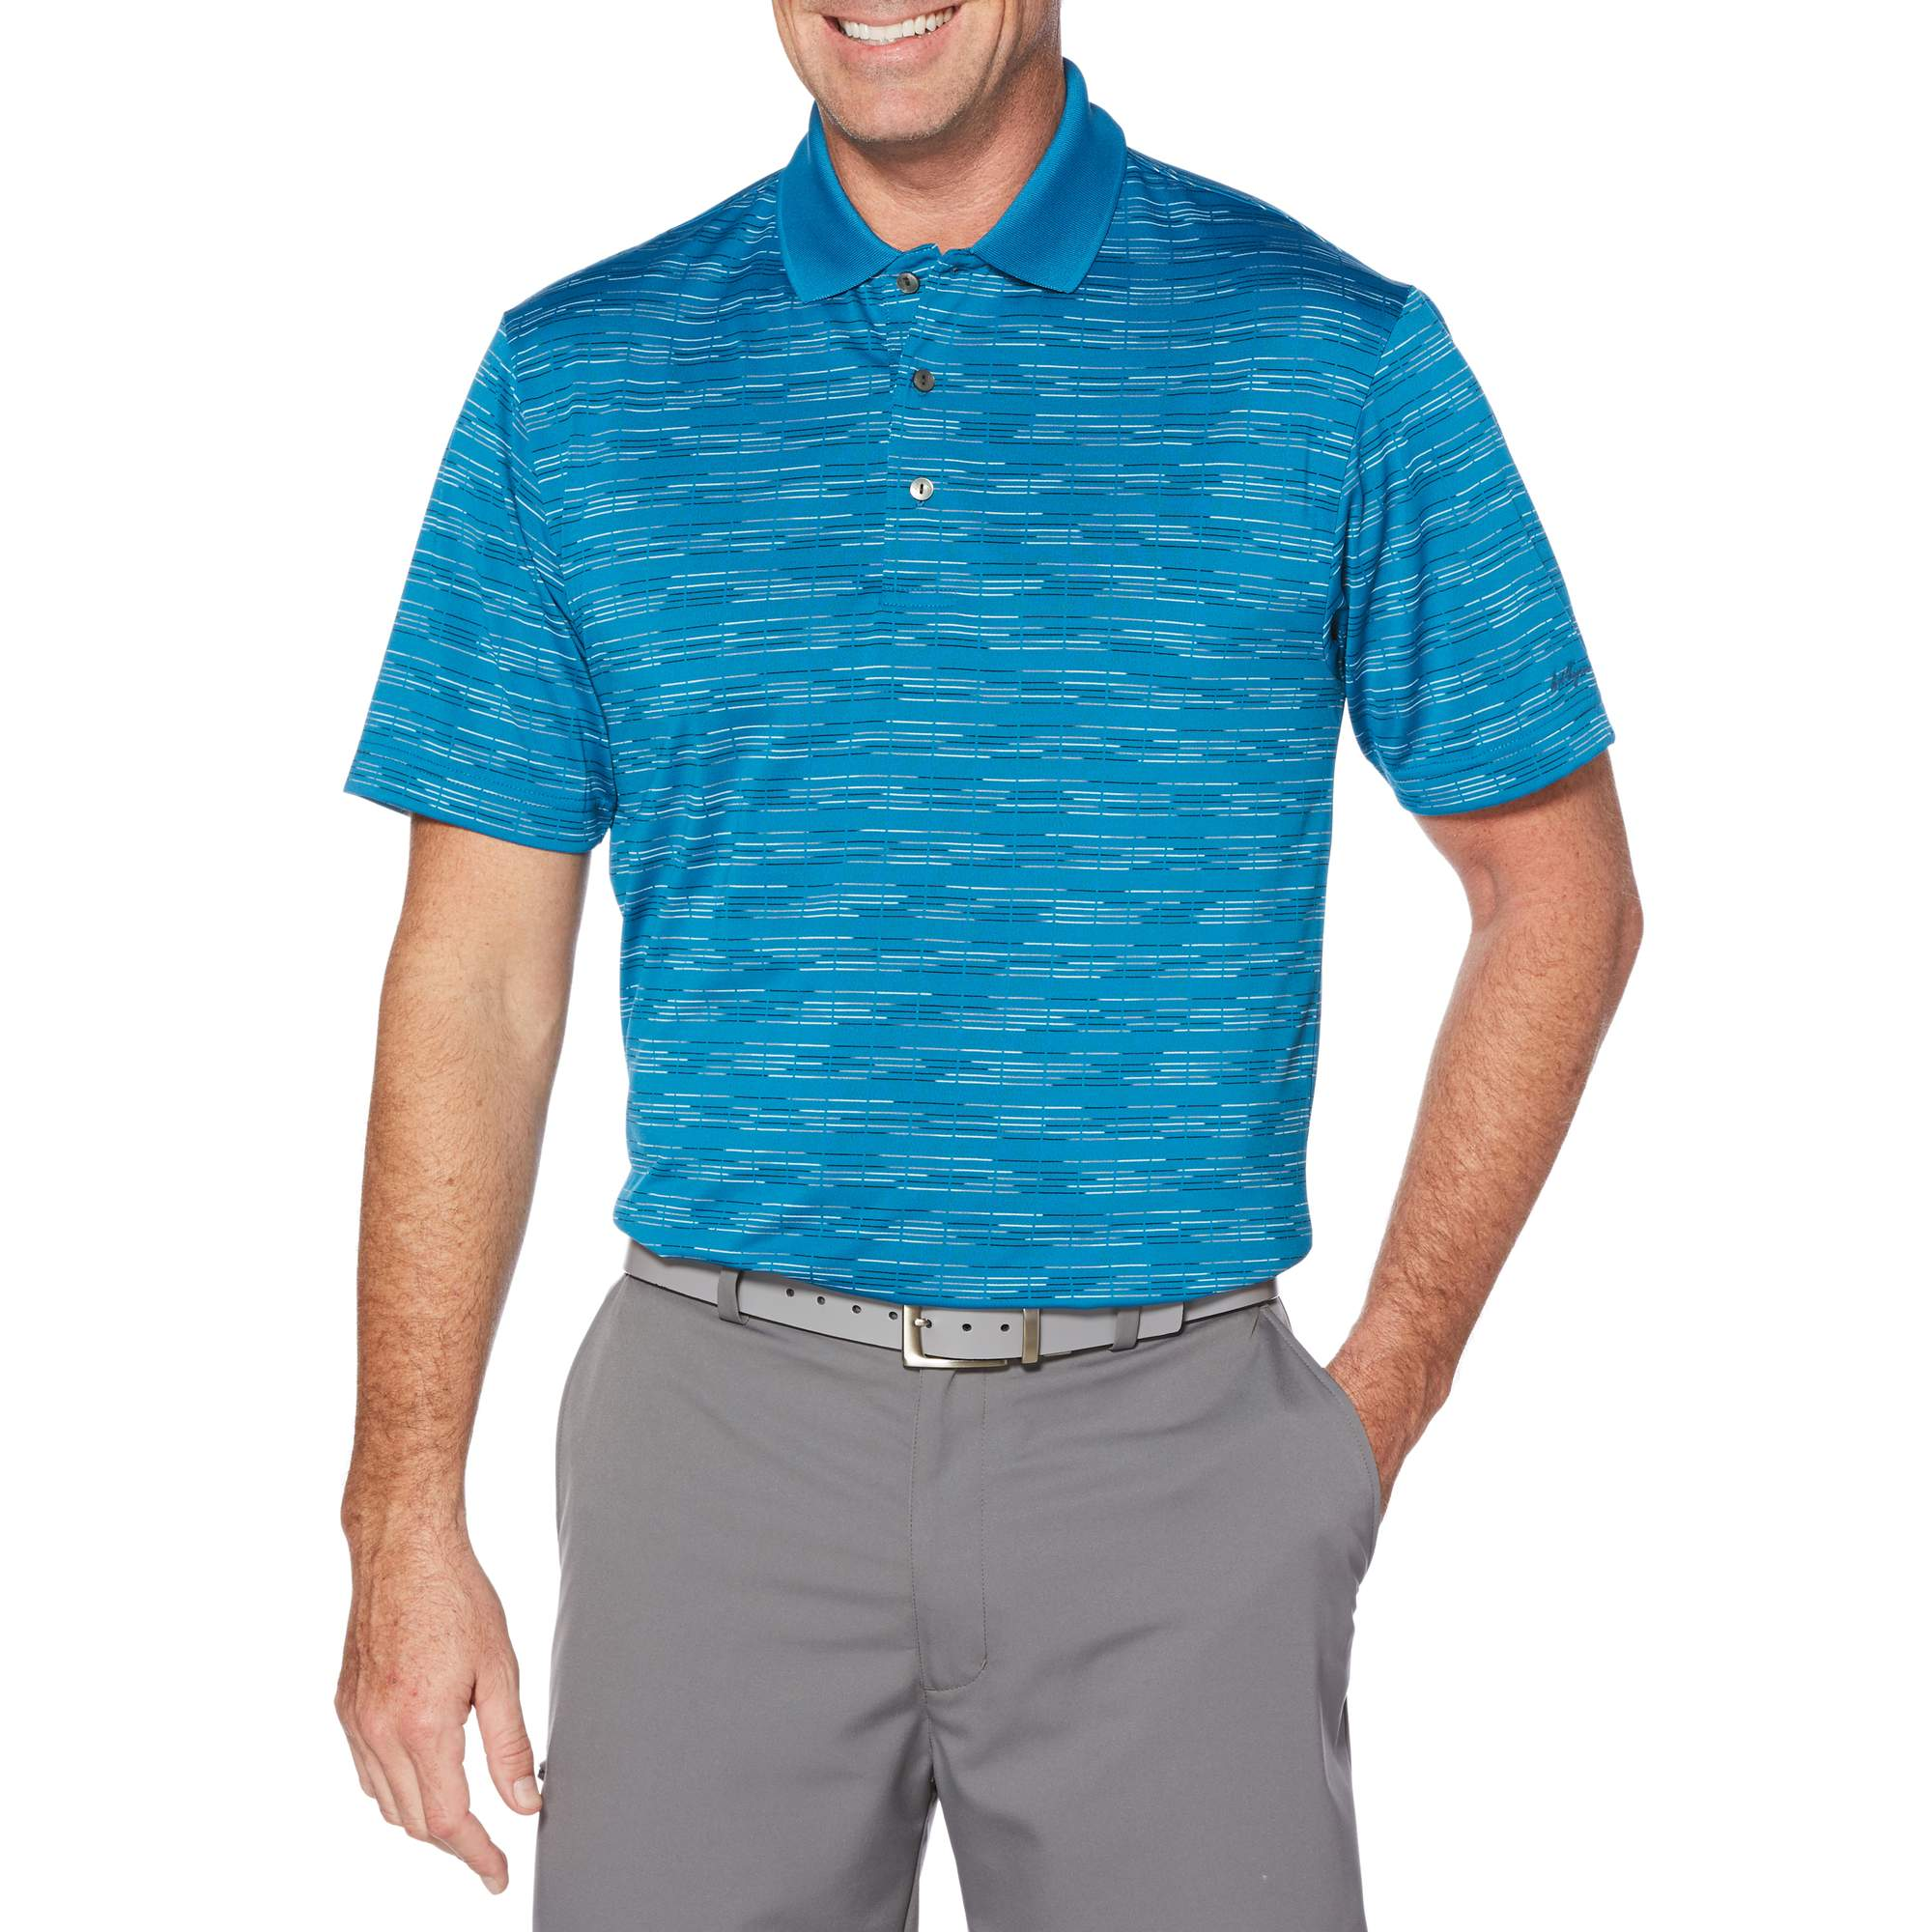 Men's Performance Short Sleeve Jacquard Golf Polo by